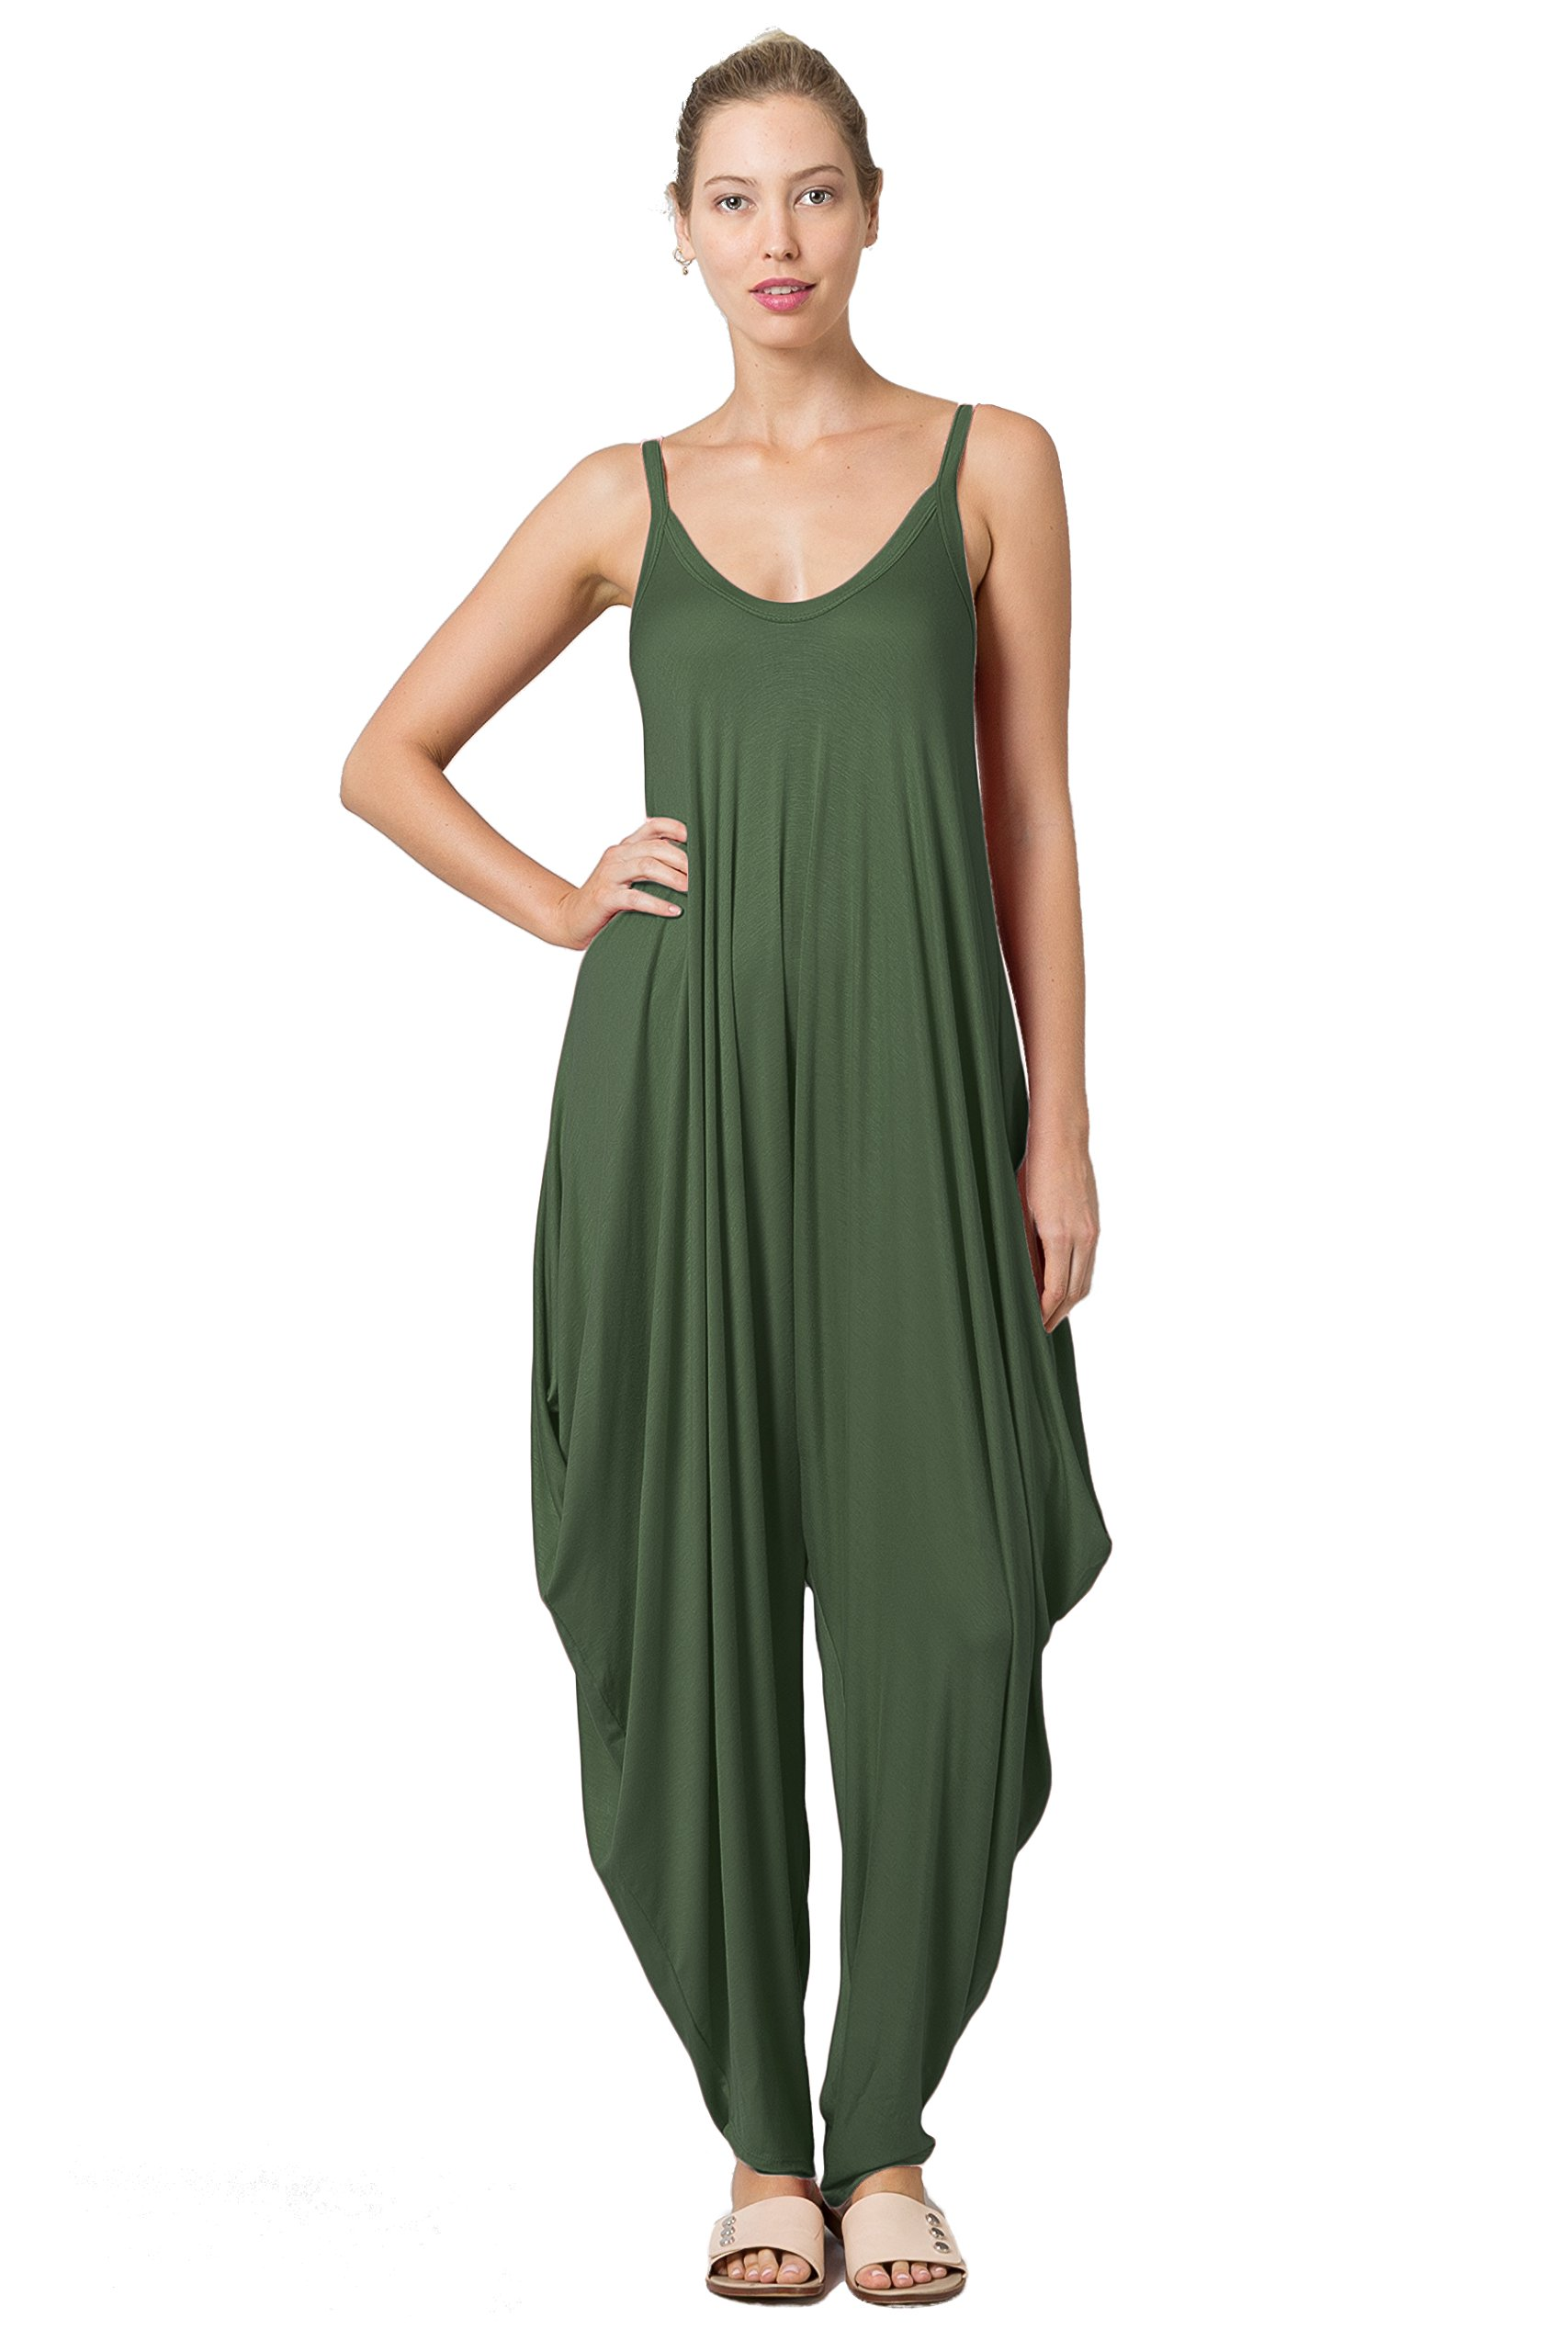 Love In JP6883 Sleeveless Wide Strap Harem Jumpsuit Ver 2.0 Updated Olive M